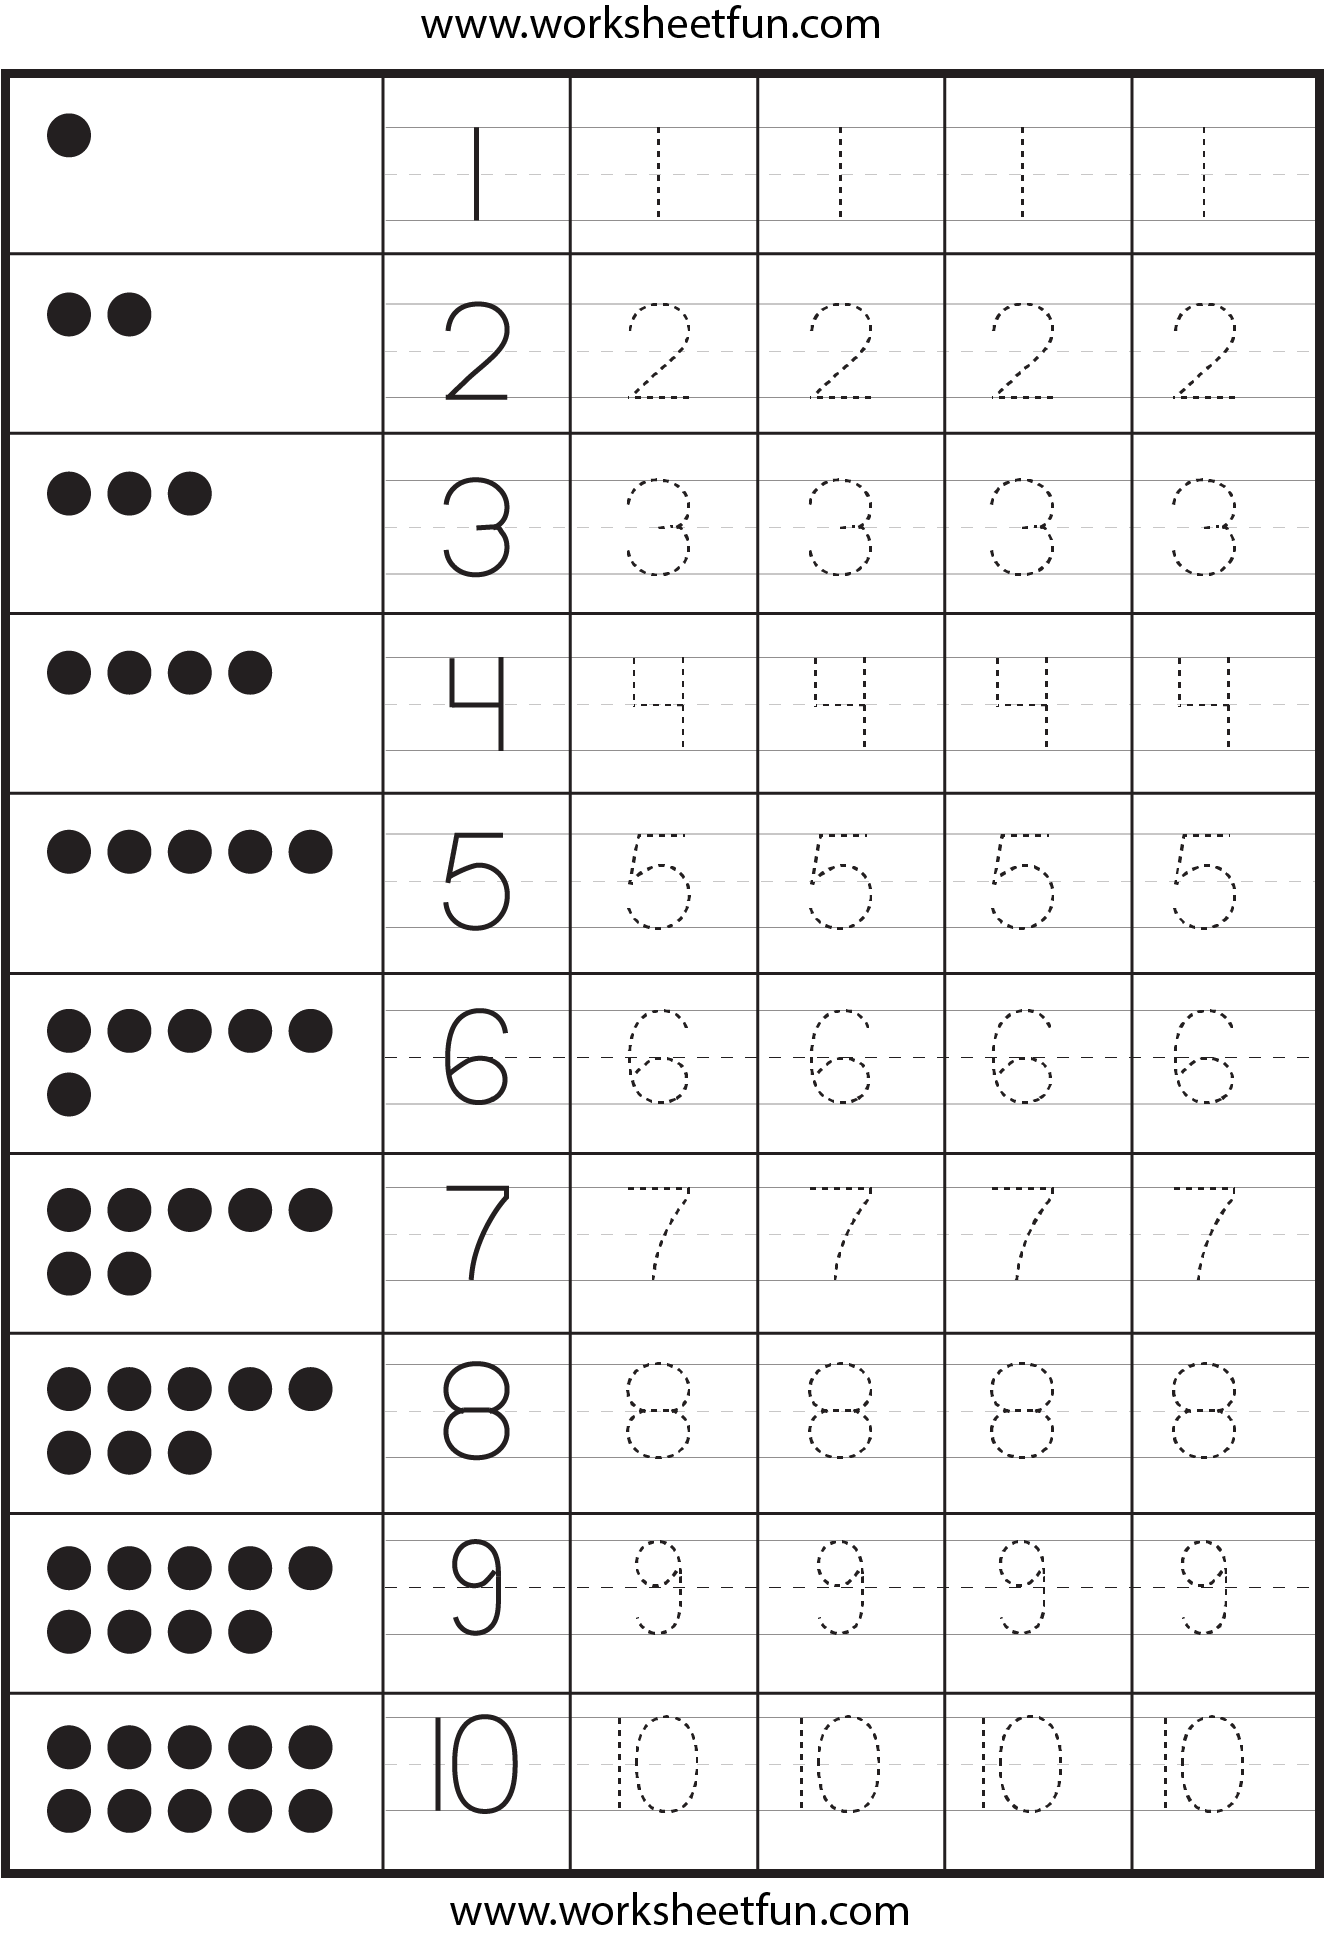 Worksheet Abc Tracing Worksheets For Kindergarten 1000 images about 123 number worksheet on pinterest worksheets for kindergarten formation and words